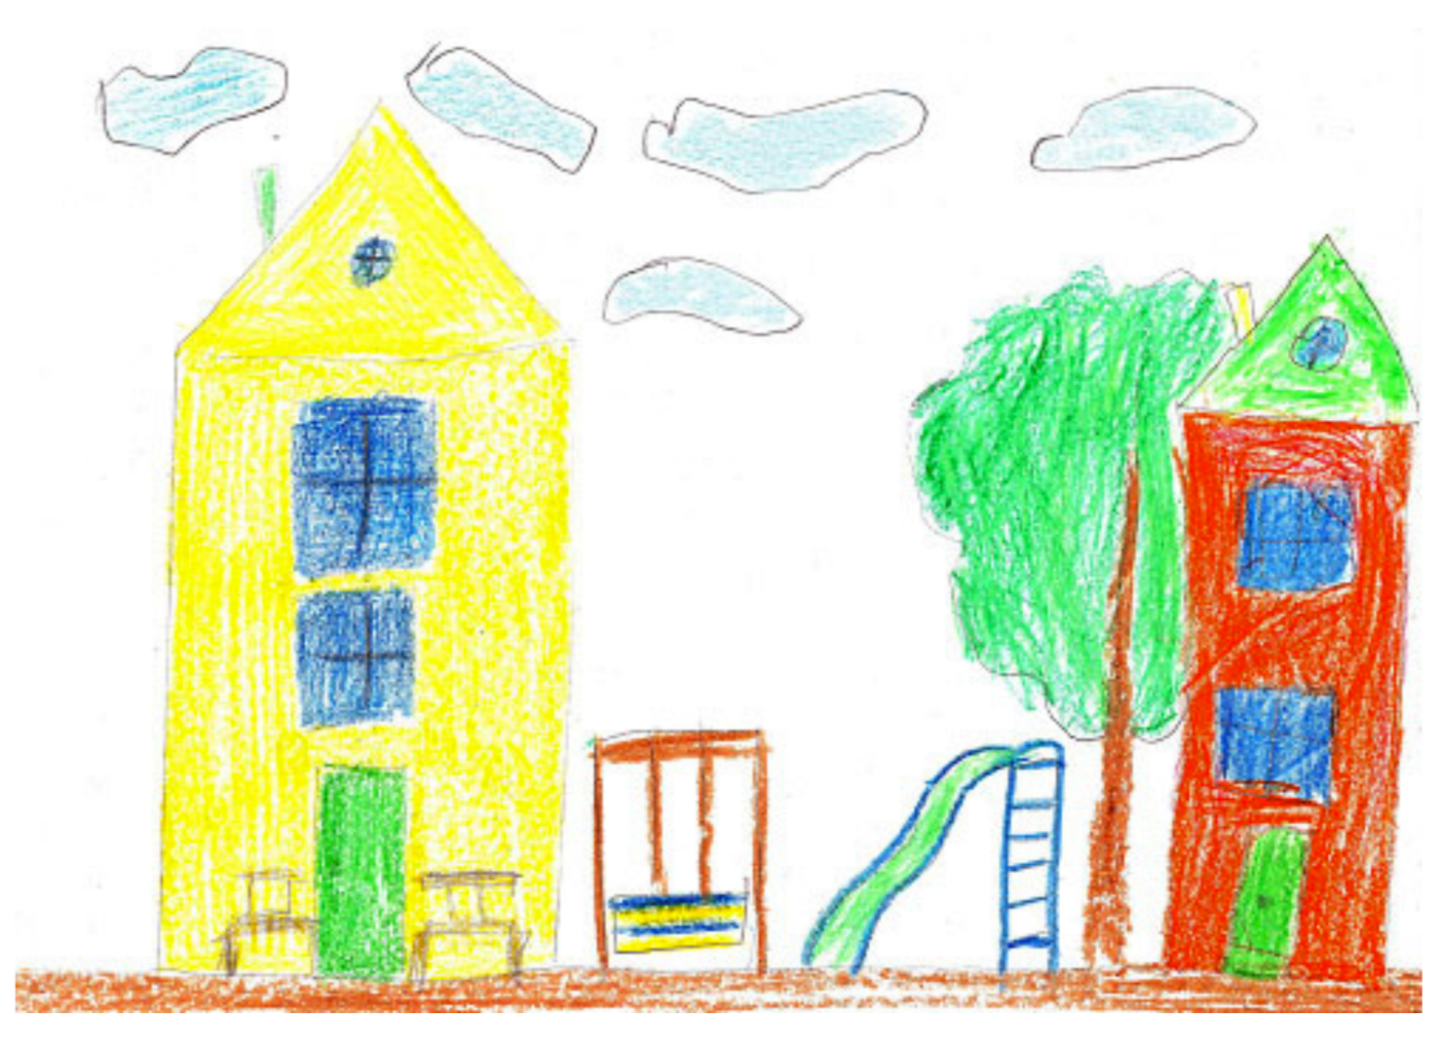 Illustration of two buildings, shared playground, a tree, and clouds